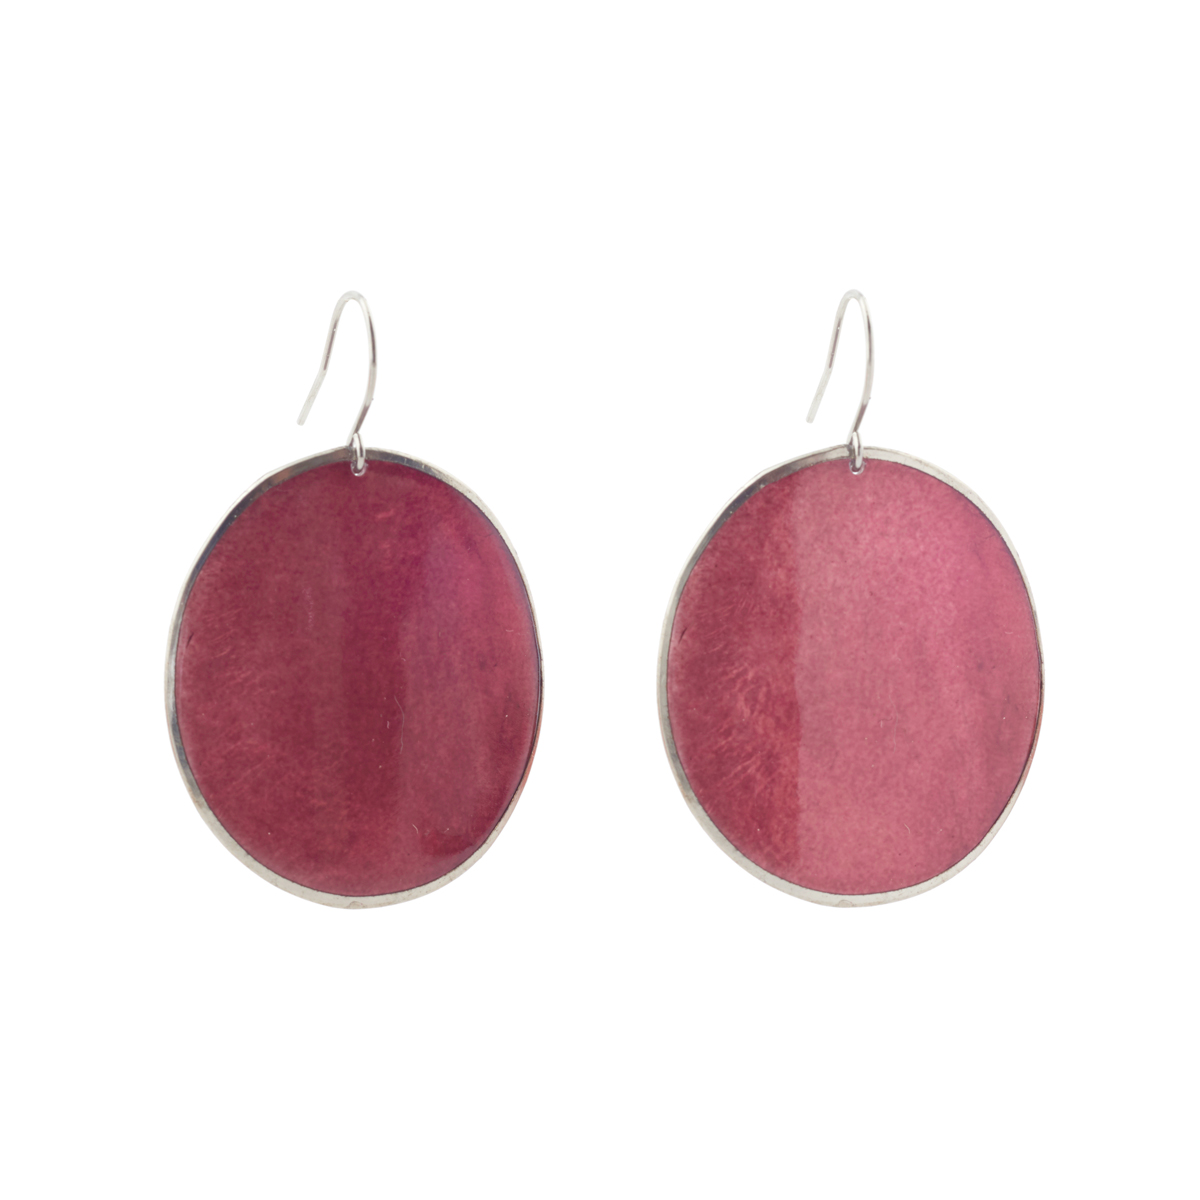 Designer Earrings Jewellery Collection